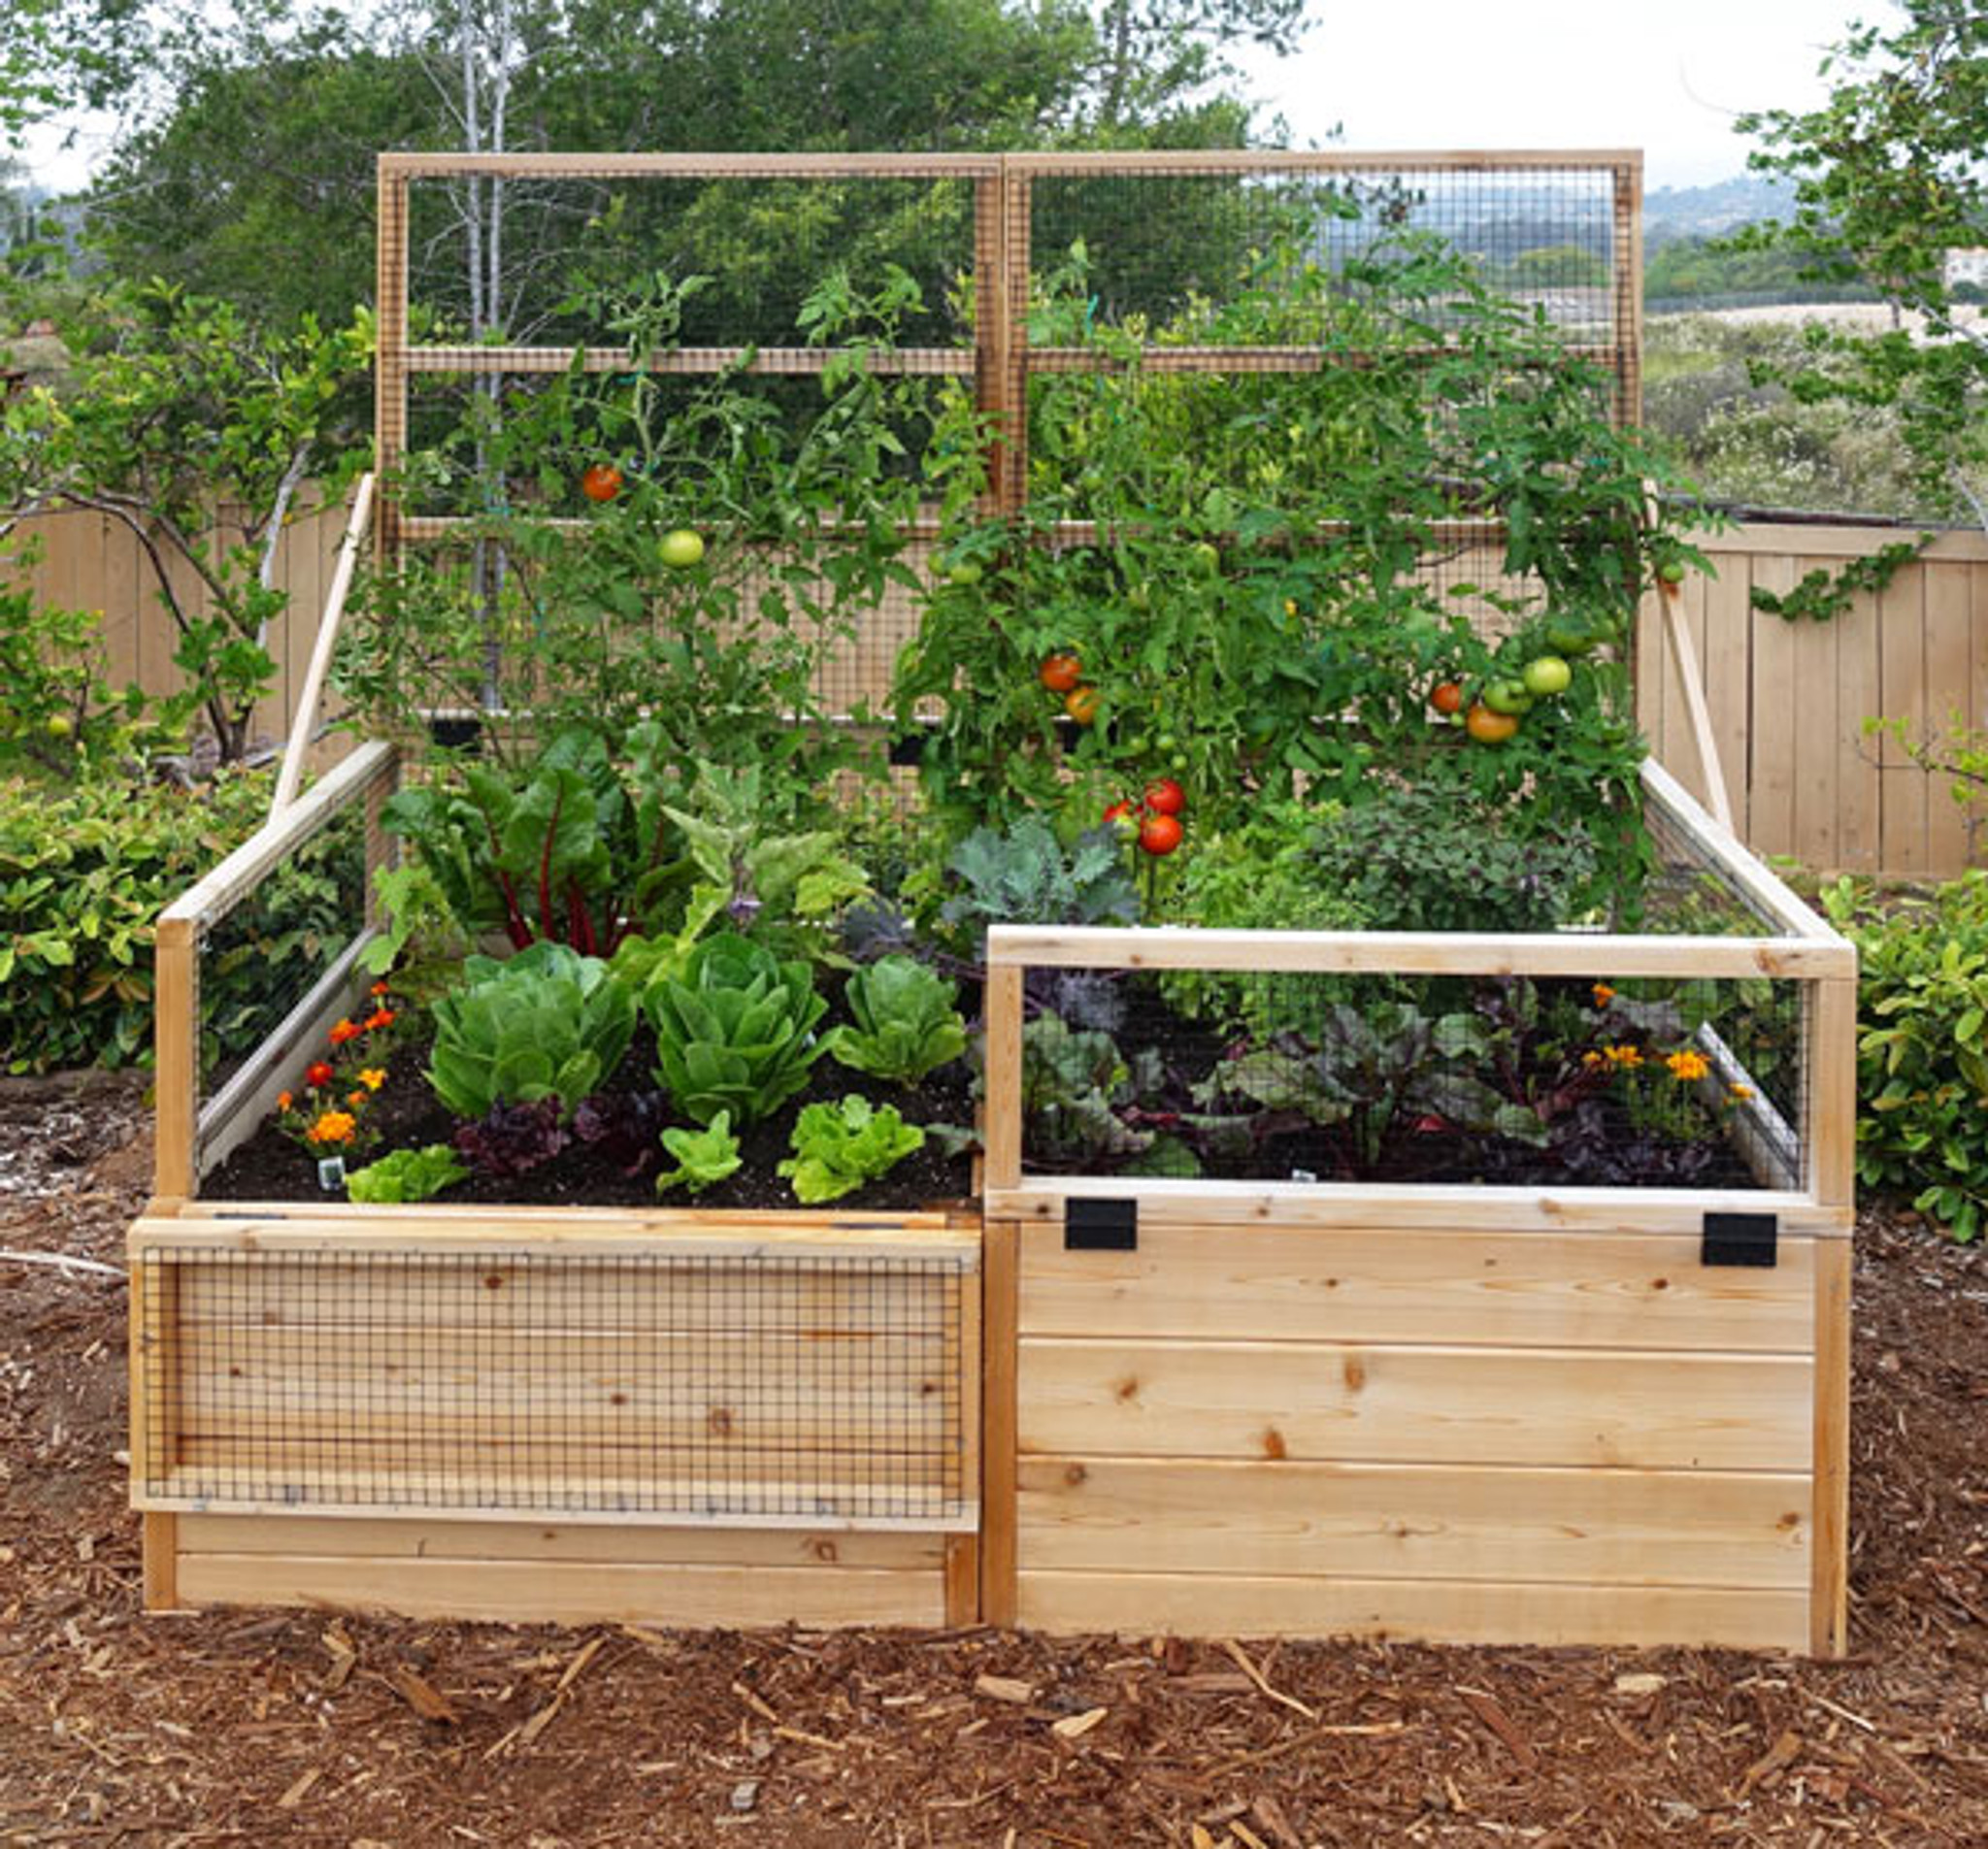 3 X 6 Raised Garden Bed With Hinged Fencing And Trellis Eartheasy Com